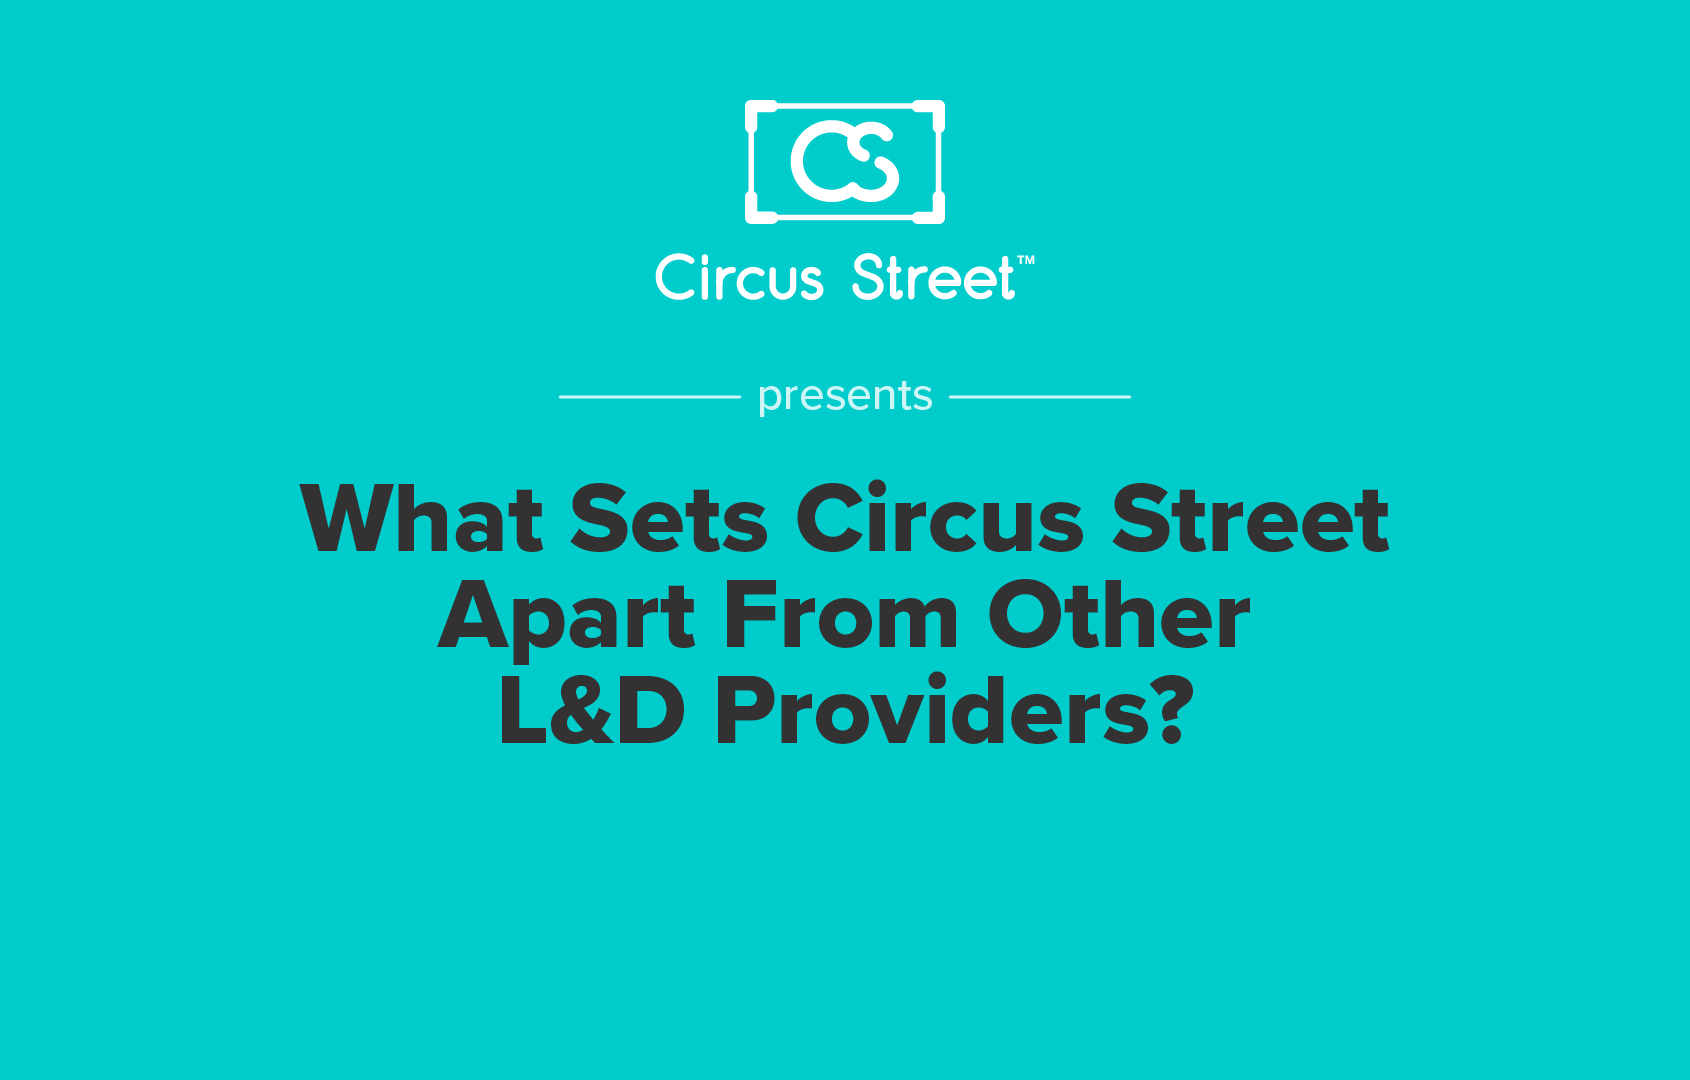 What sets Circus Street apart from other L&D providers?